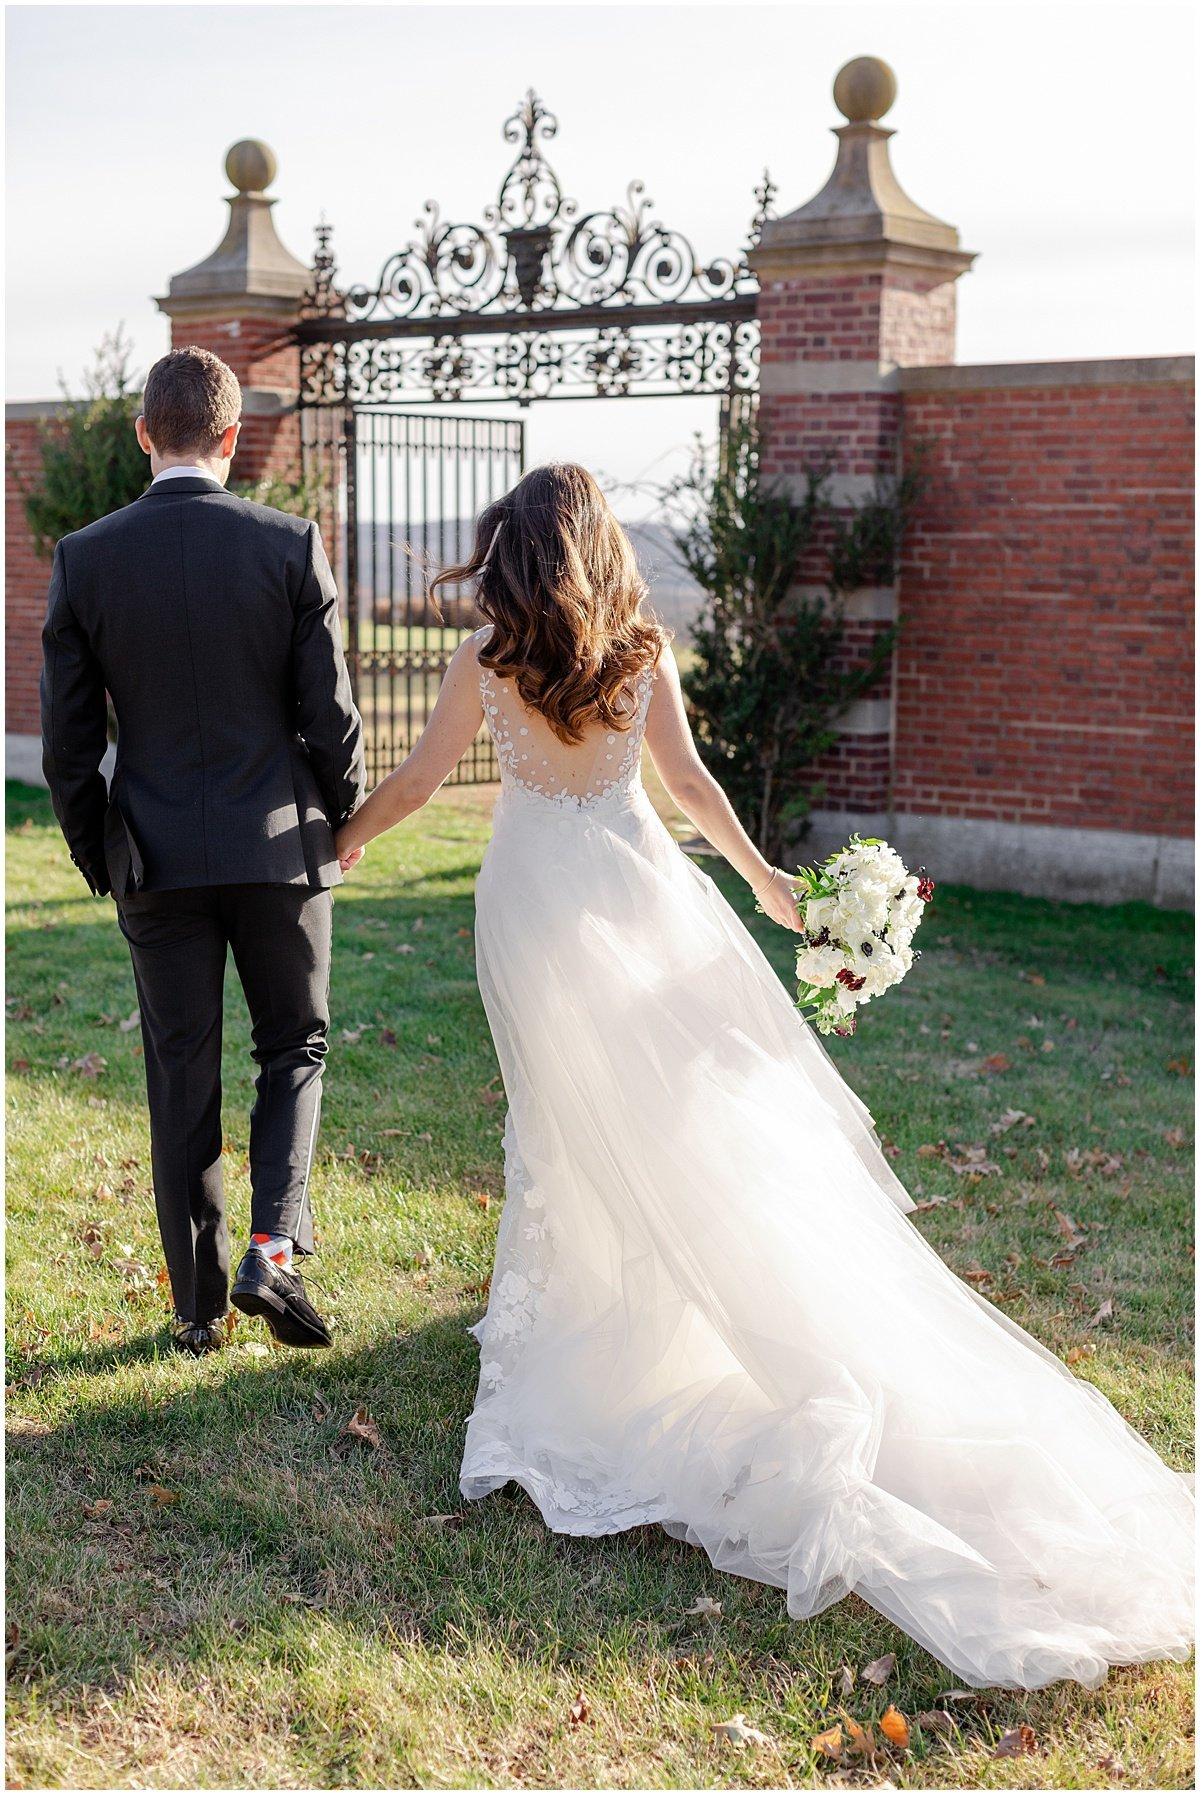 Lauren-Kearns-Photo-Fall-Wedding-Inspiration-at-Natirar_0052